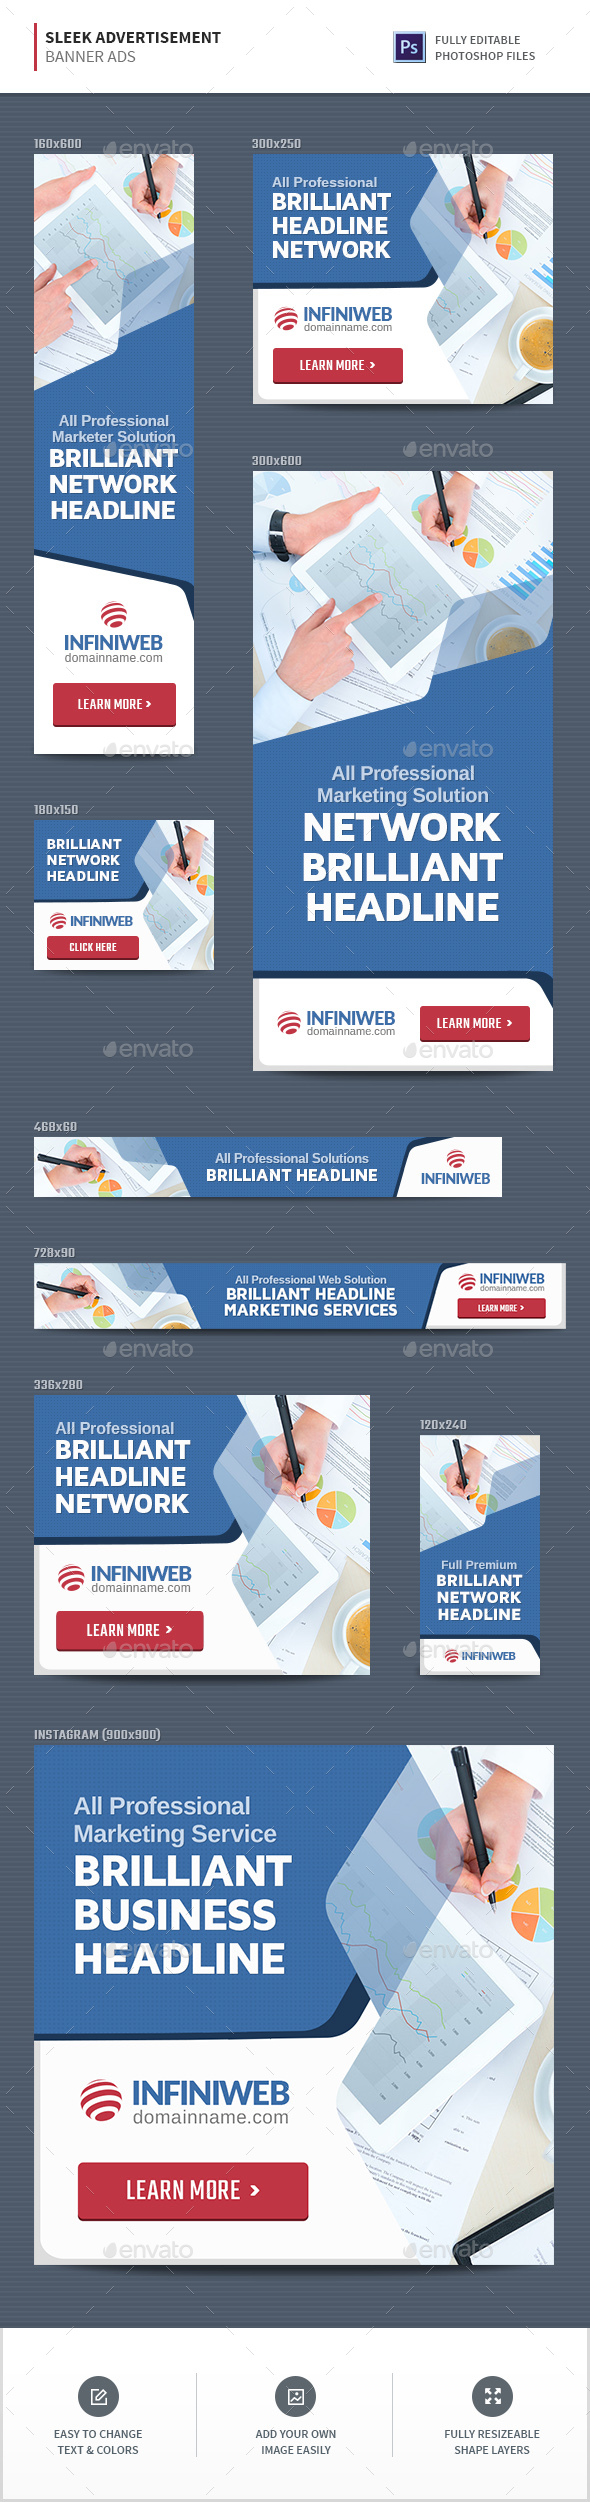 Sleek Advertisement Banners - Banners & Ads Web Elements